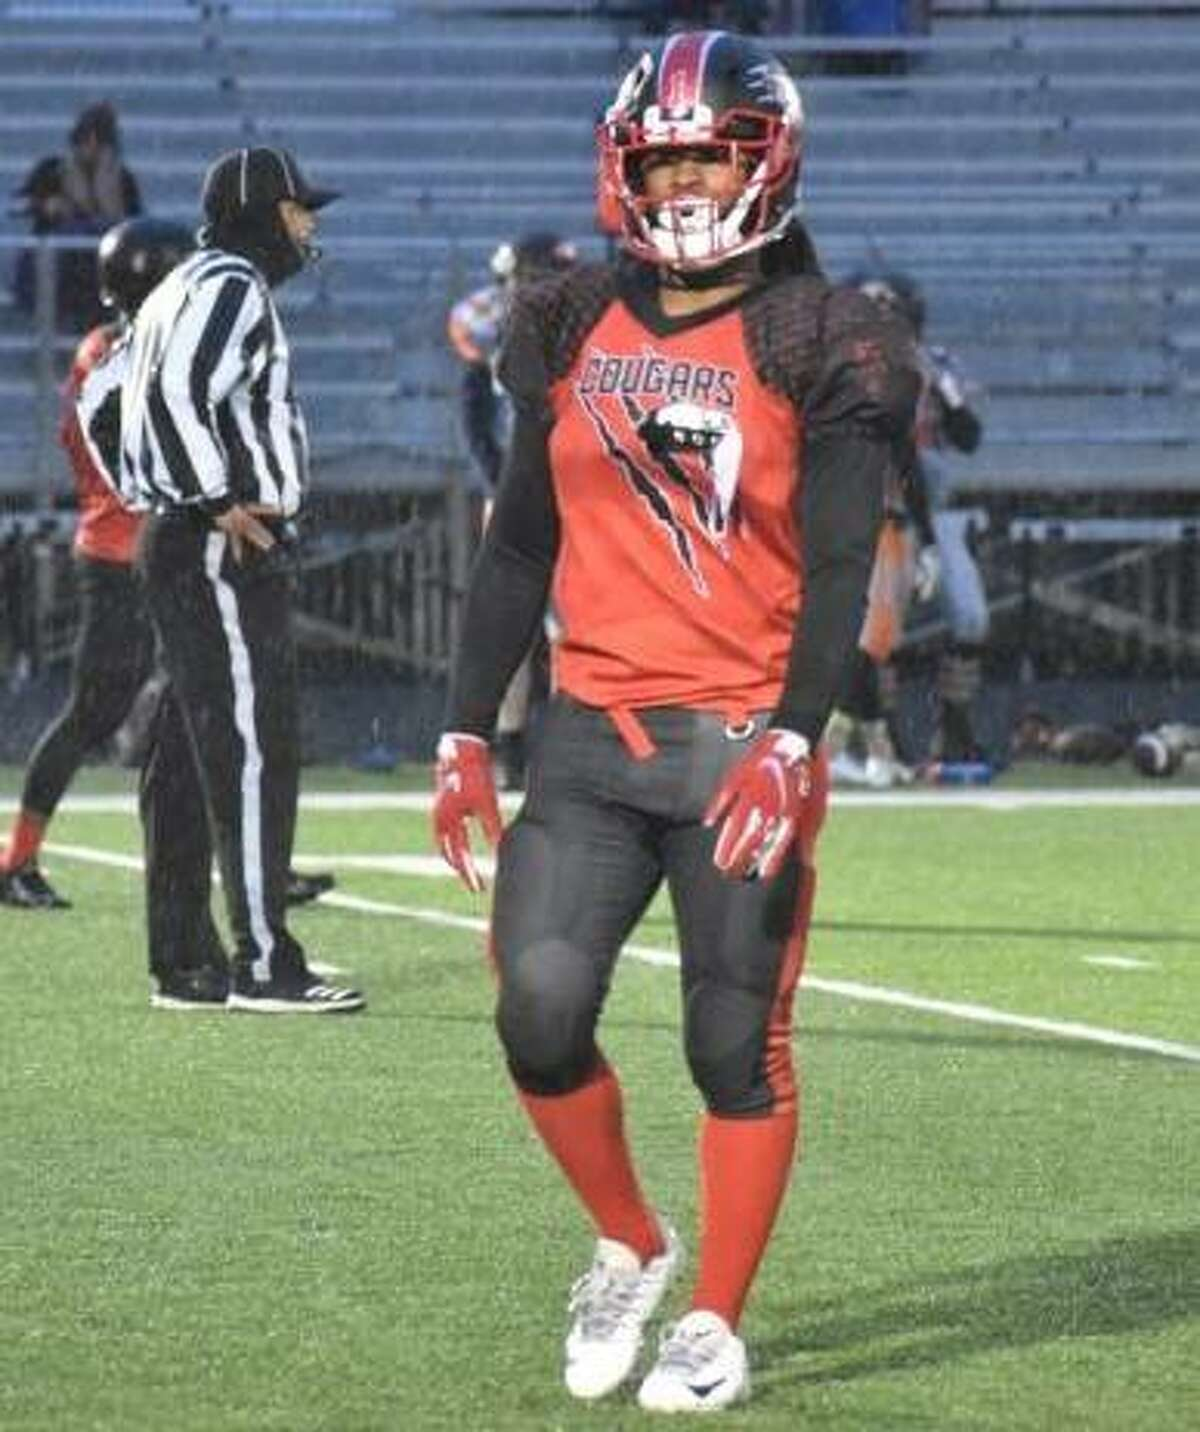 Ryan Hubbard of Alton is one of the area players on this season's Central Illinois Cougars semi-pro football team's roster. The Cougars will open their 2021 season at 7 p.m. Saturday at Gordon Moore Park against the Midwest Lions of St. Louis.